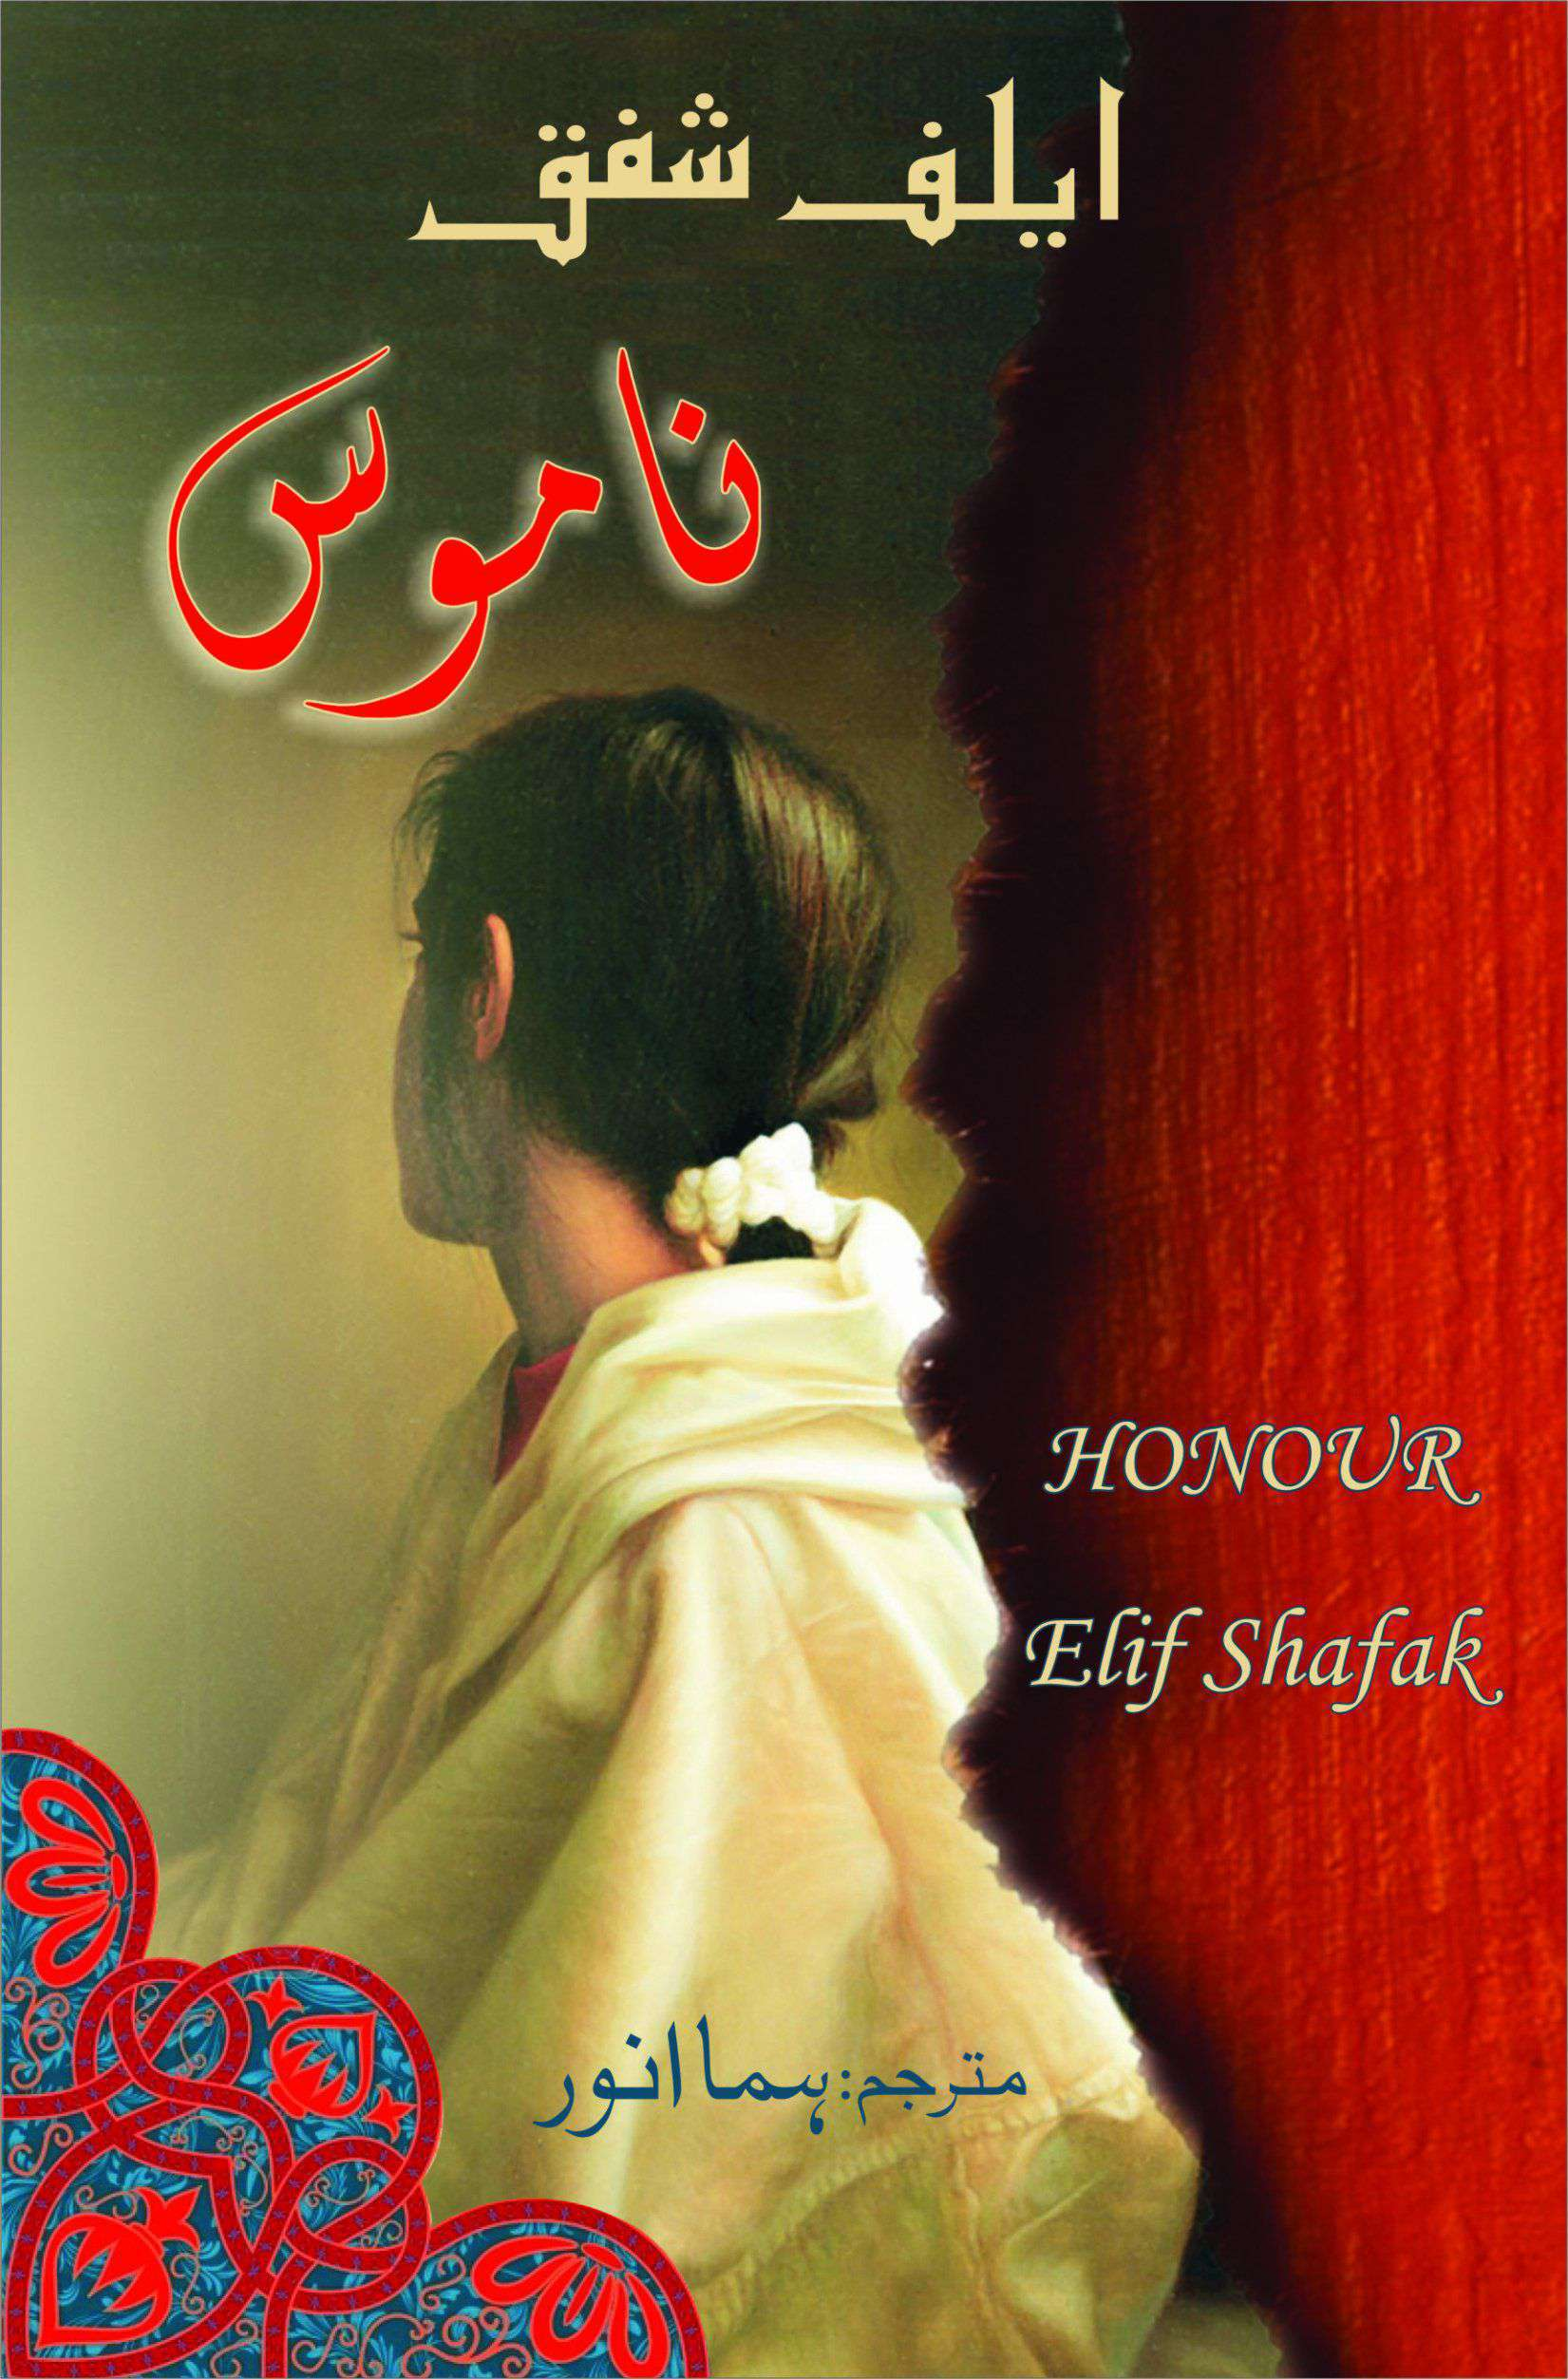 Naamoos by Elif Shafaq Honour by Elif Shafaq